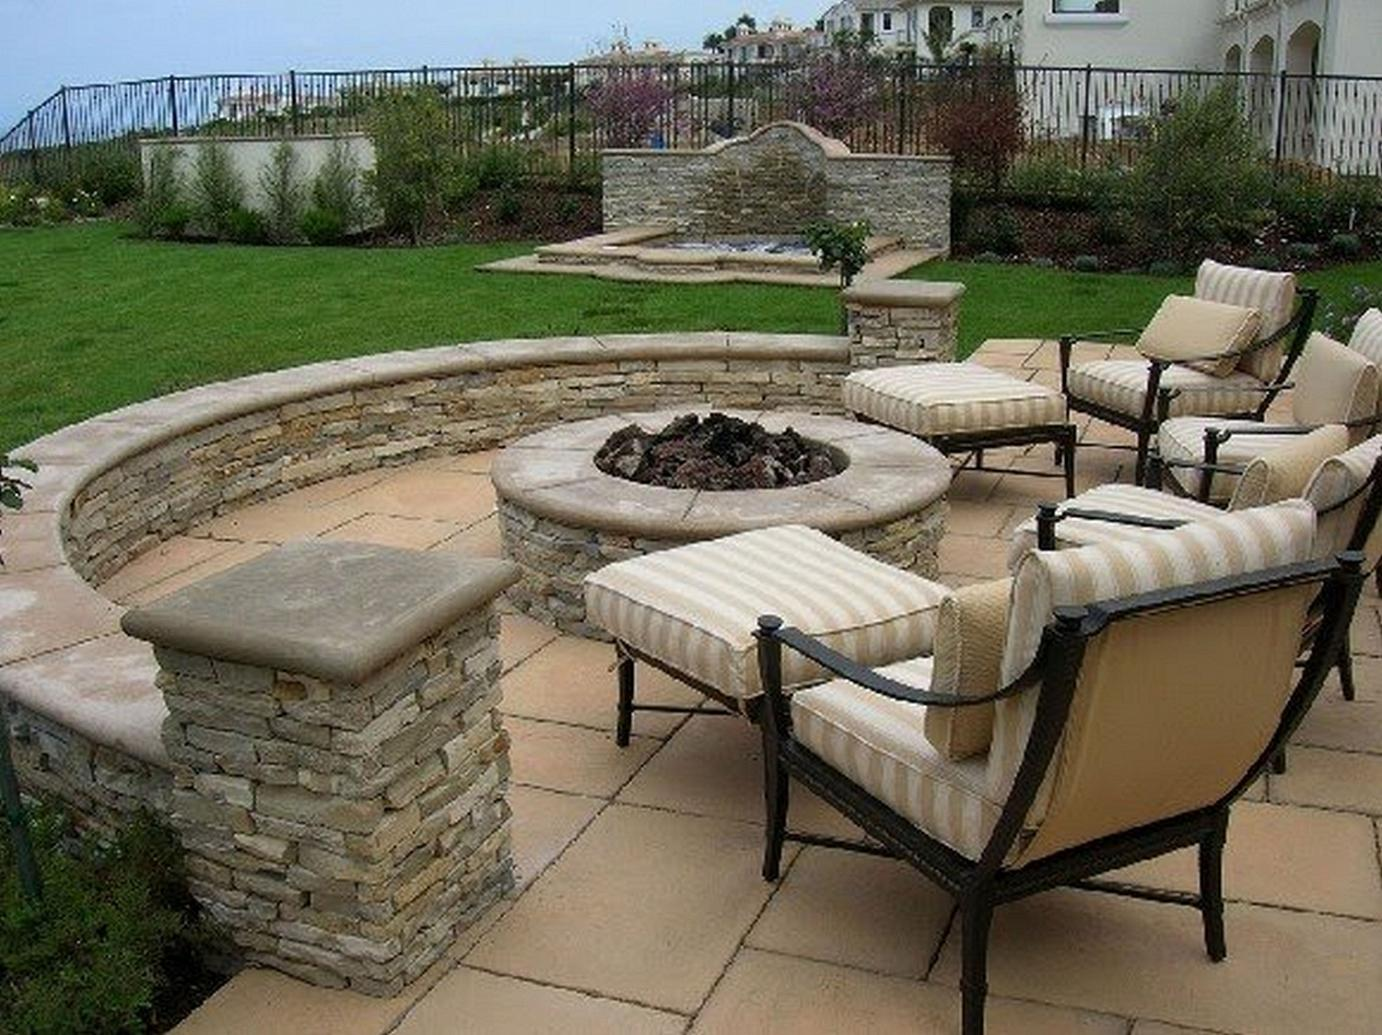 Backyard ideas budget - large and beautiful photos. Photo to select Backyard ideas budget ...